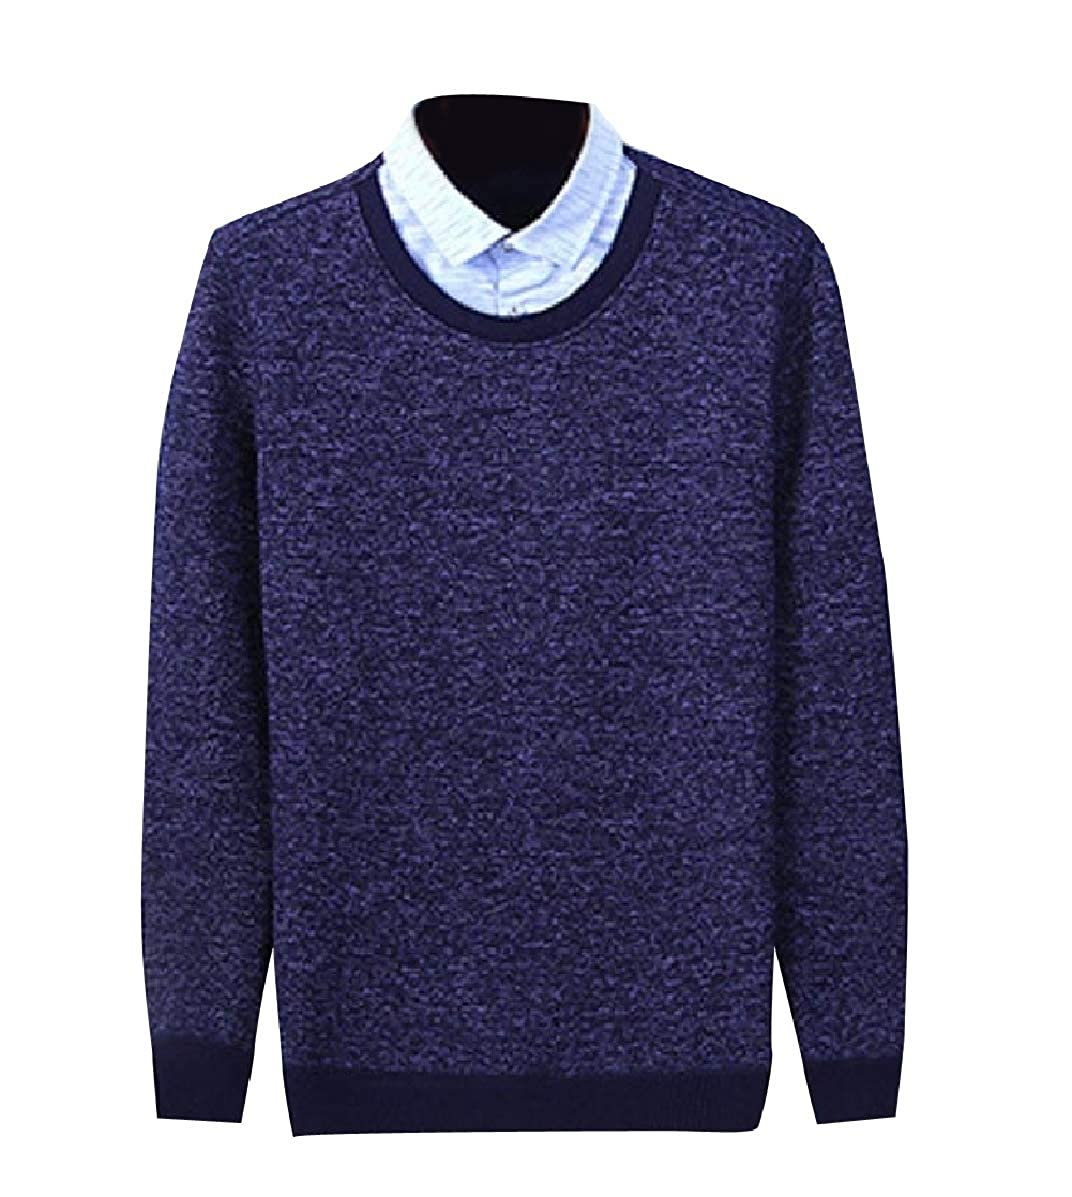 YUNY Mens Knitted Polo-Collar Slim Pullover Fake Two Pieces Sweaters Navy Blue S